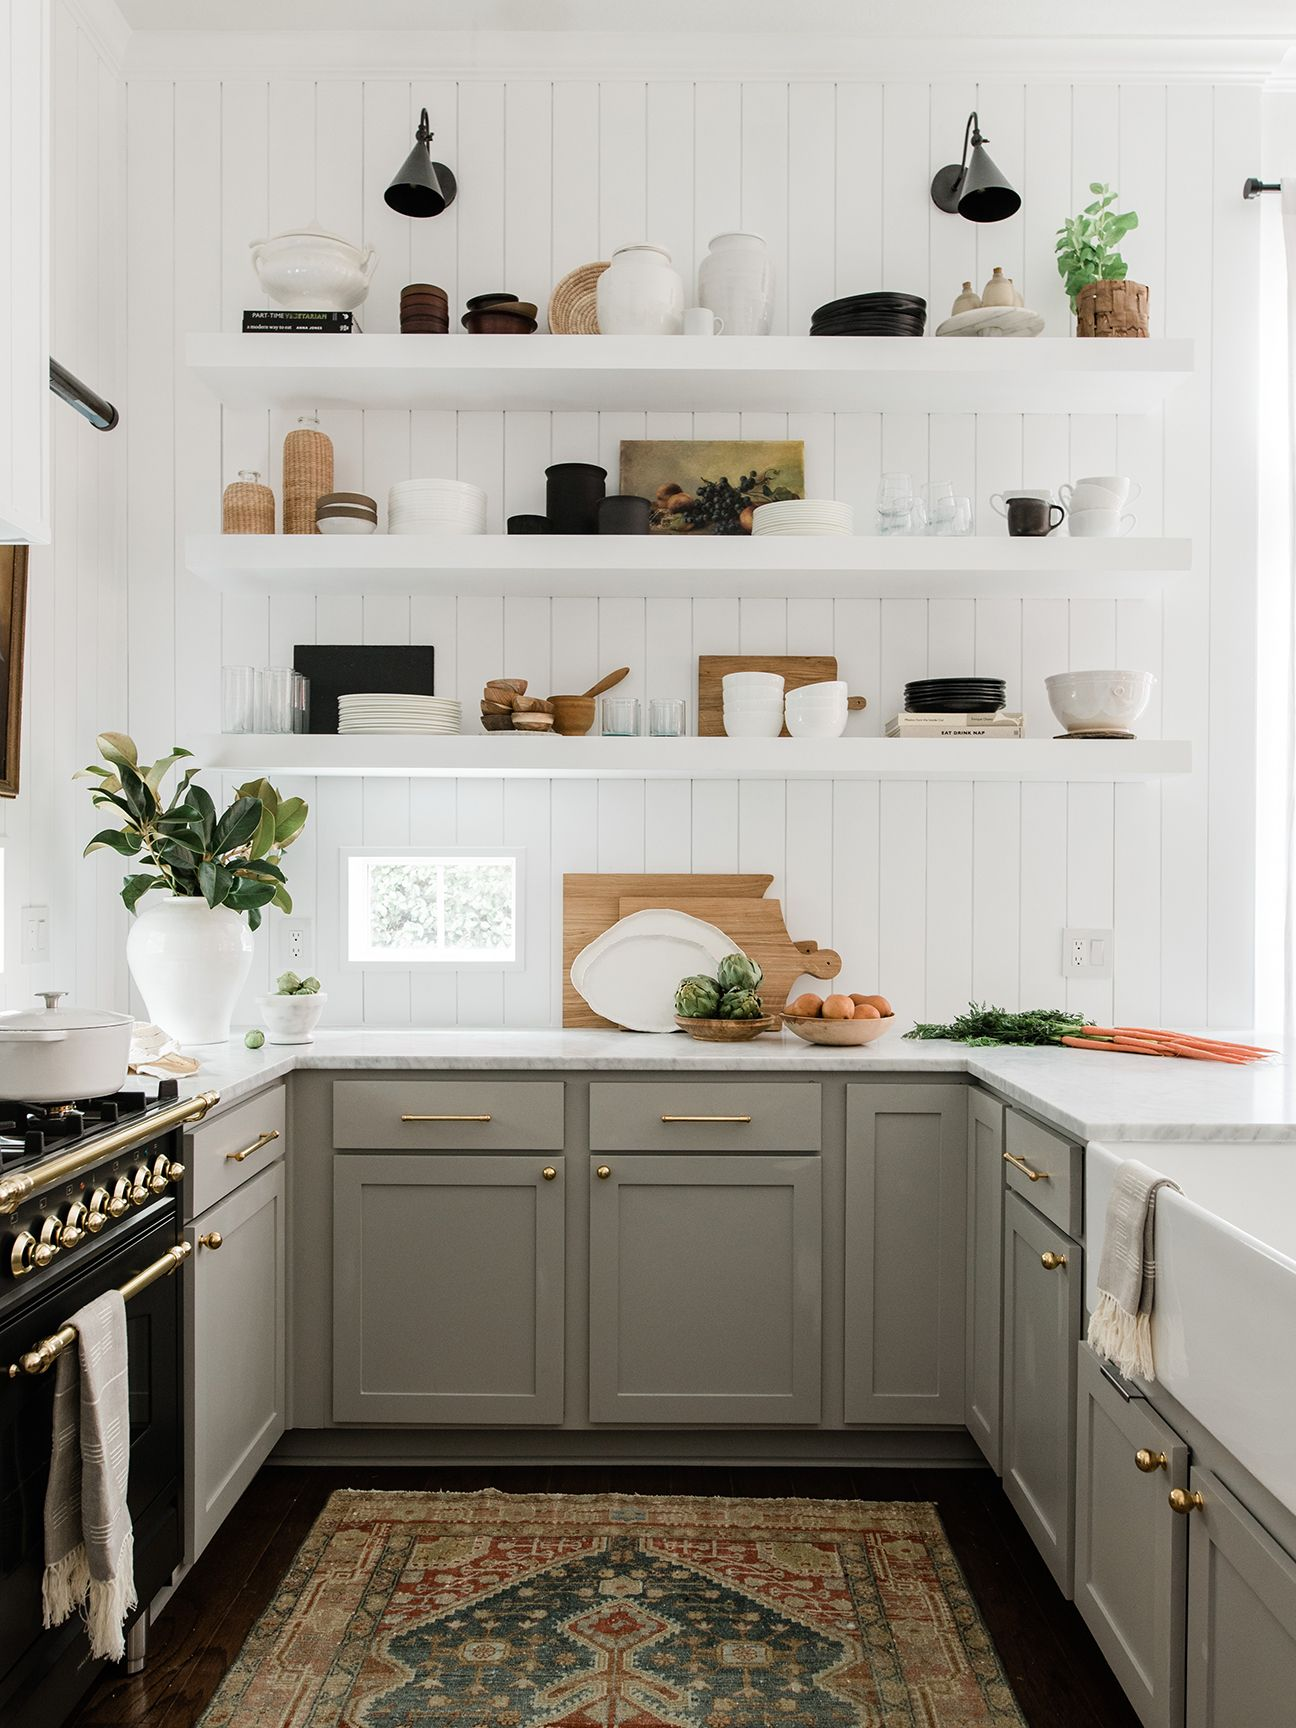 Kitchen Organization Tips to Bookmark If You Have Zero Storage #decoratehome